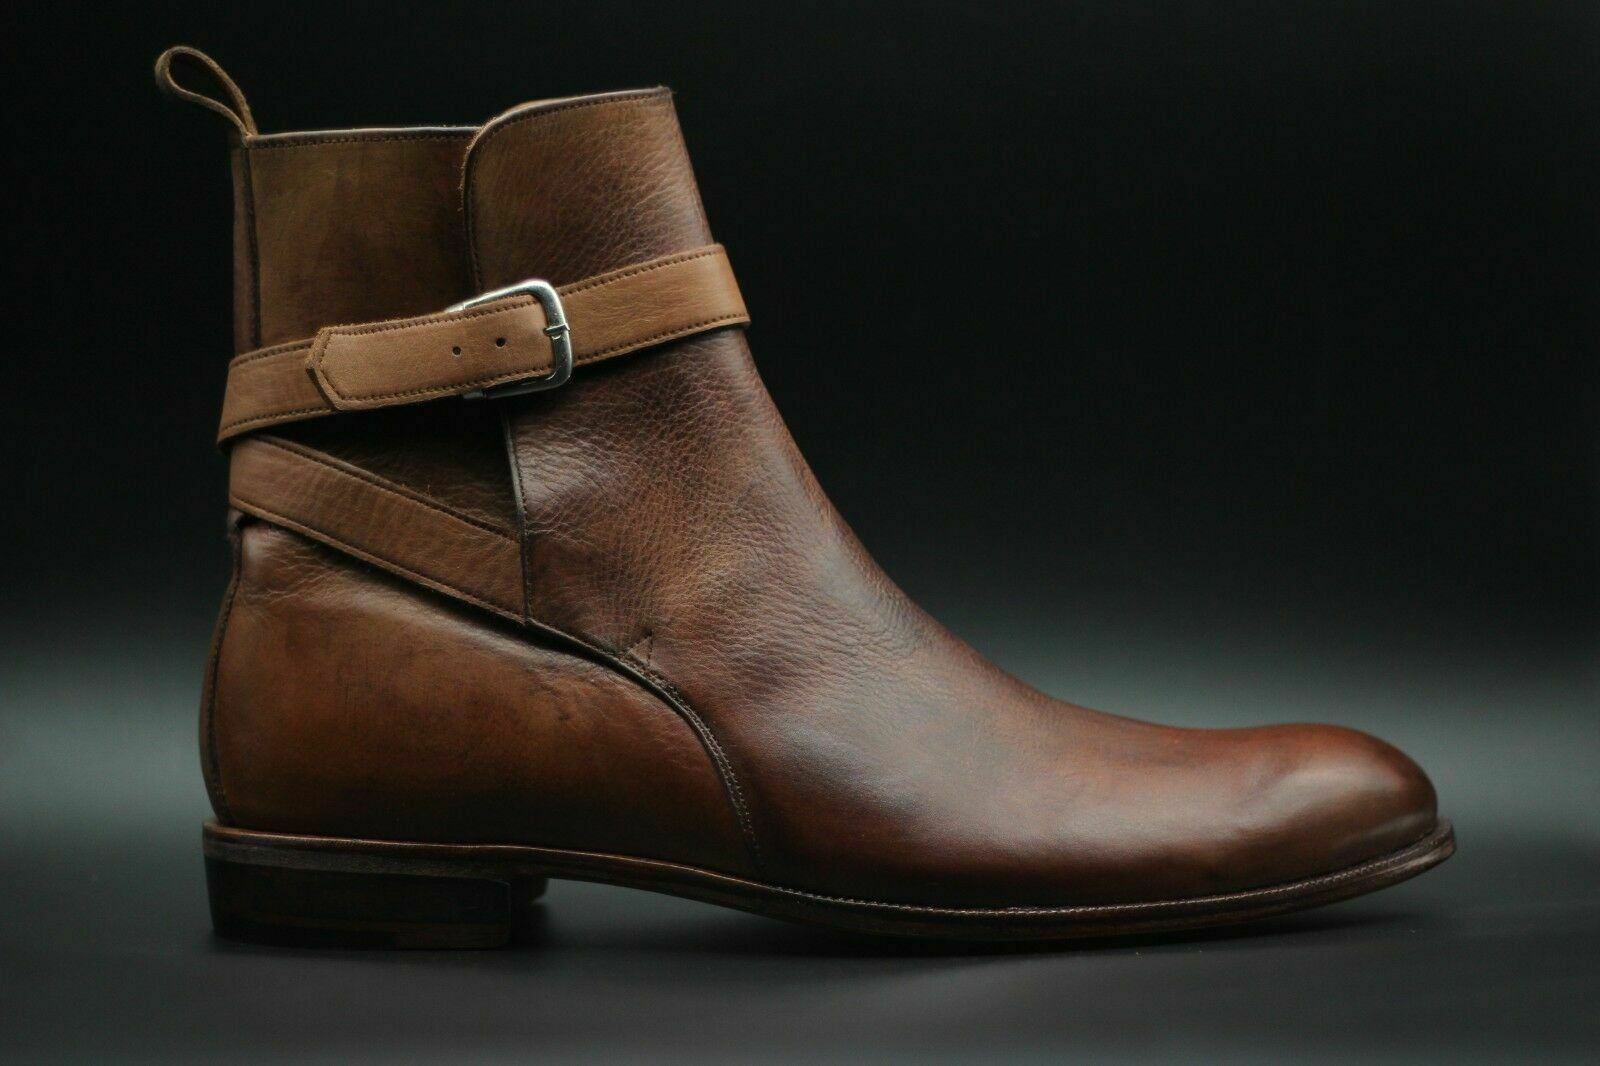 Mens Handmade Boots Genuine Brown Leather Ankle Buckle Strap Casual Formal shoes